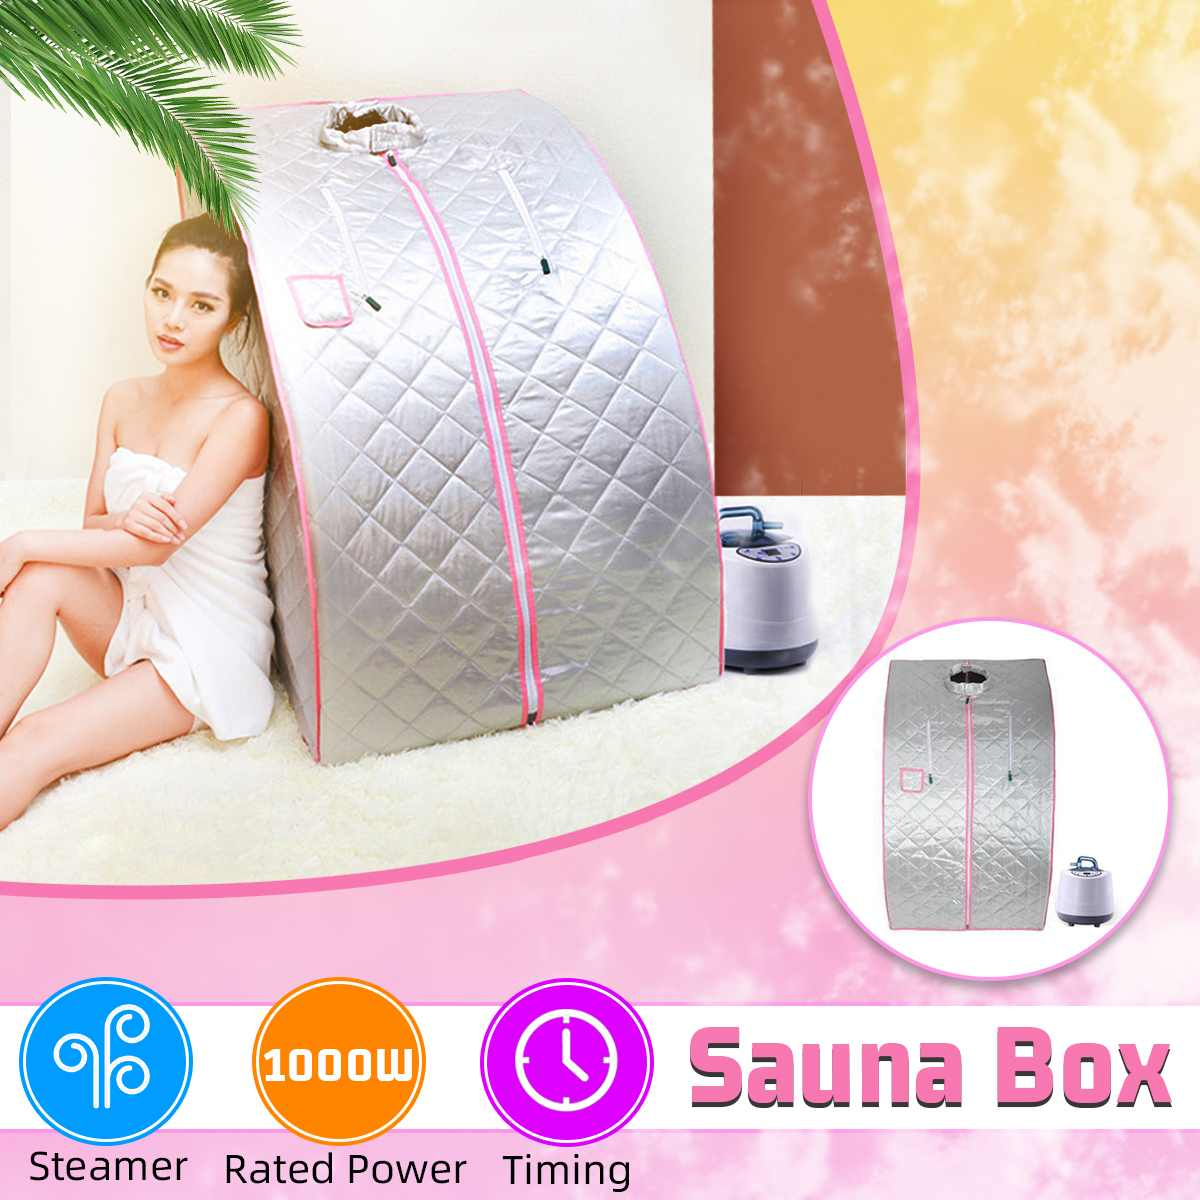 Portable Steam Sauna Home Sauna Generator Slimming Household Sauna Box Ease Insomnia Stainless Steel Pipe Support STEAMER 1000W